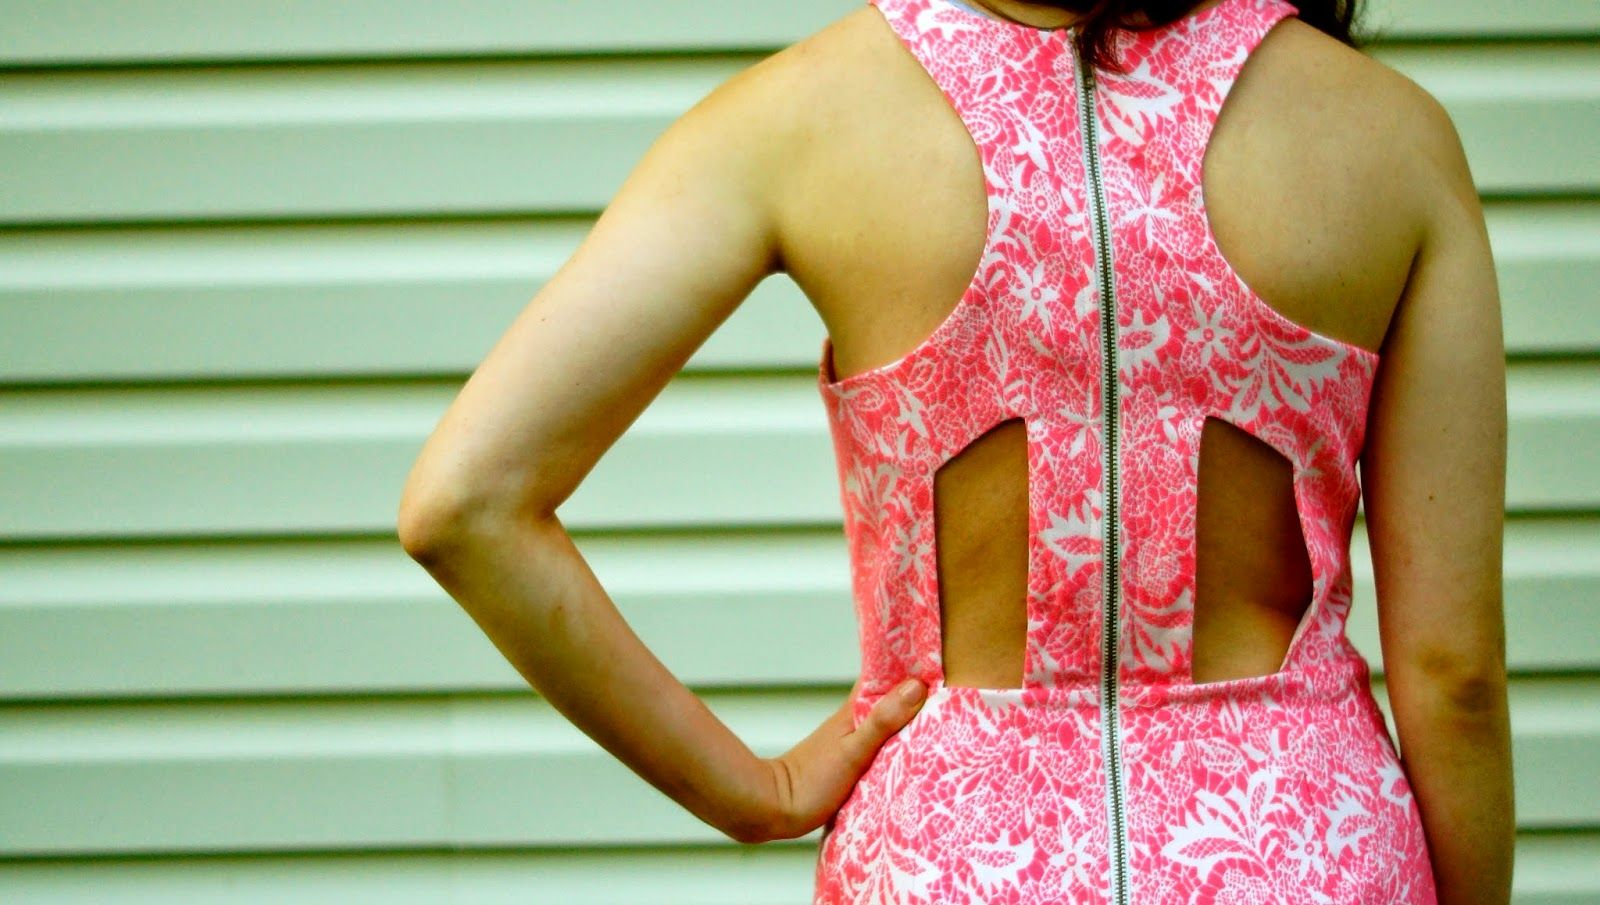 Katie from OneLittleBlackBlog looks stunning in her Sugar Lips dress with cutouts from #9thandelm!